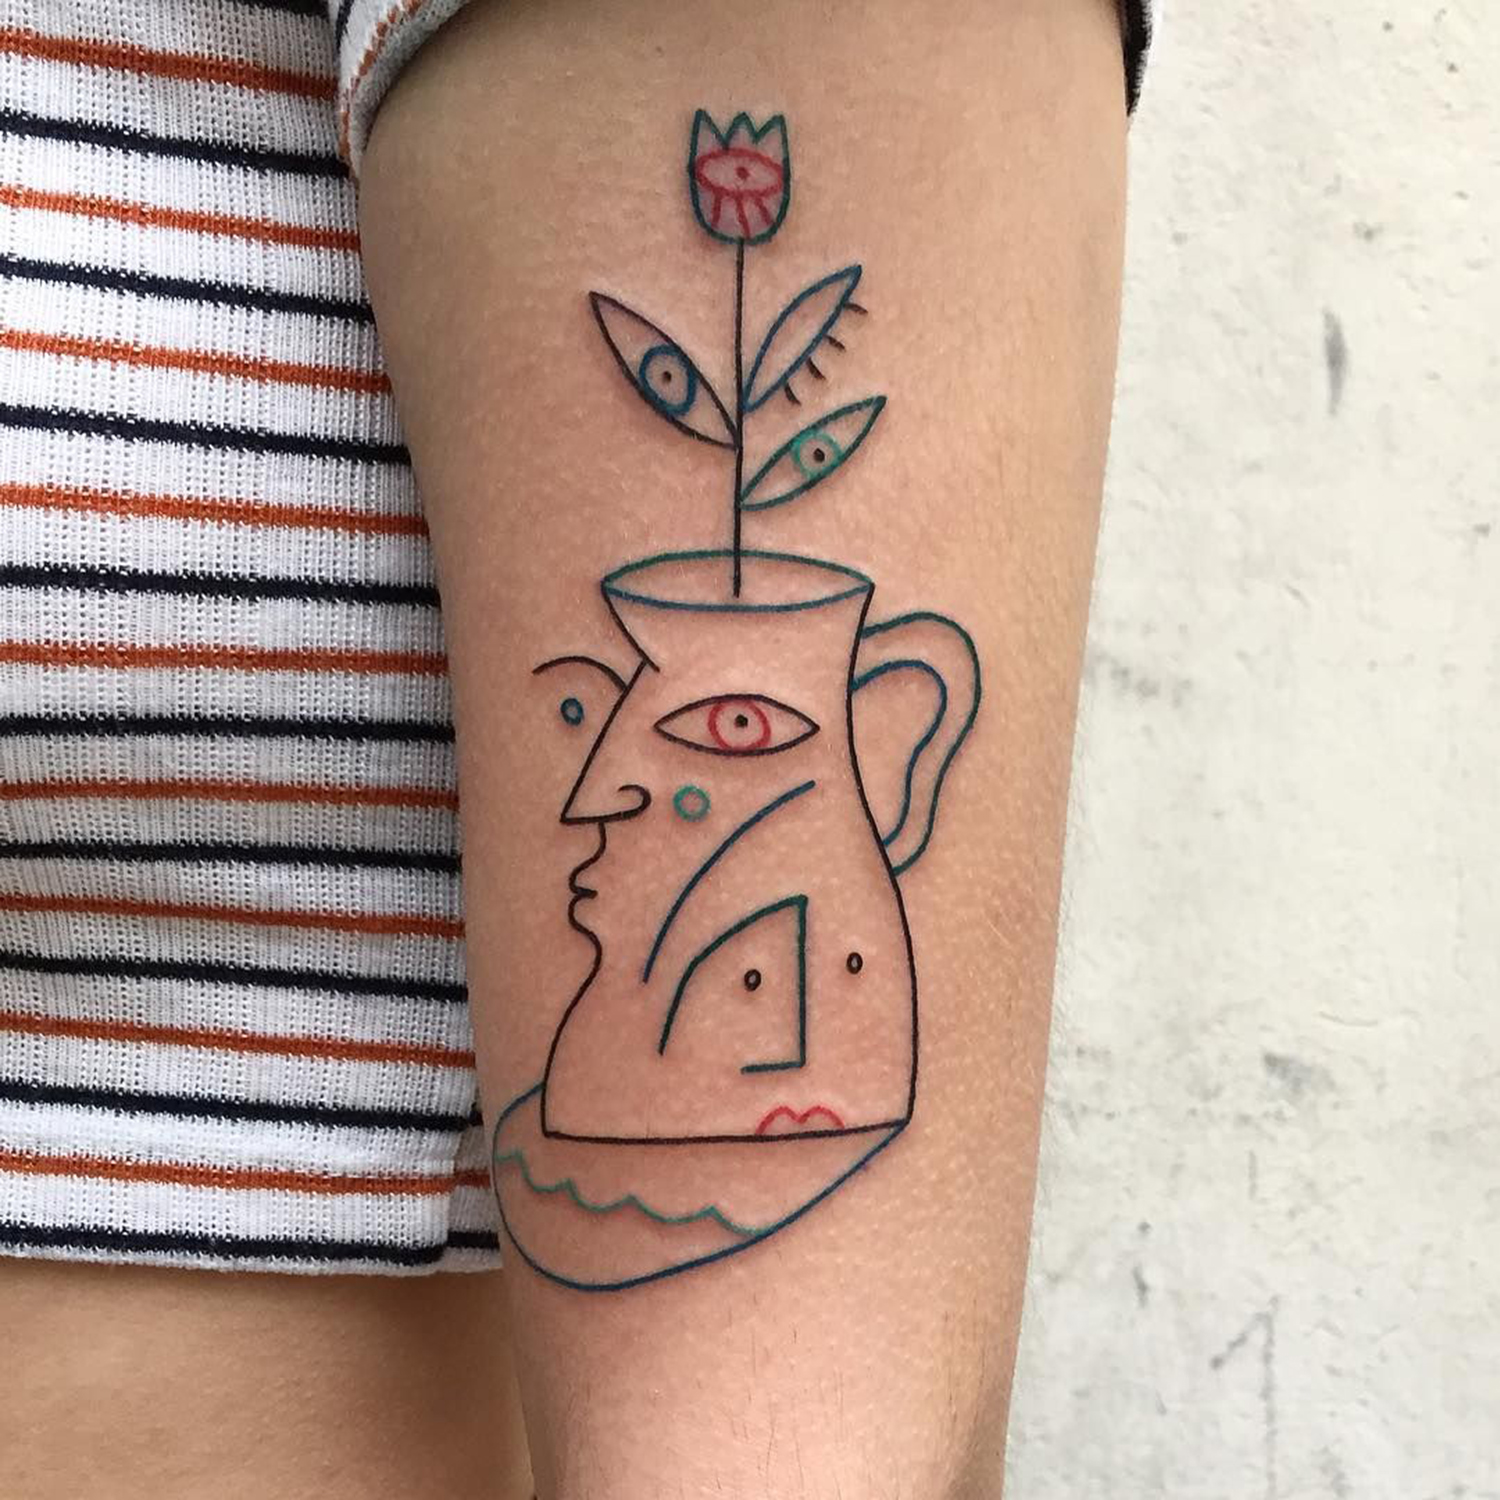 flower, vase and face, abstract linework tattoo